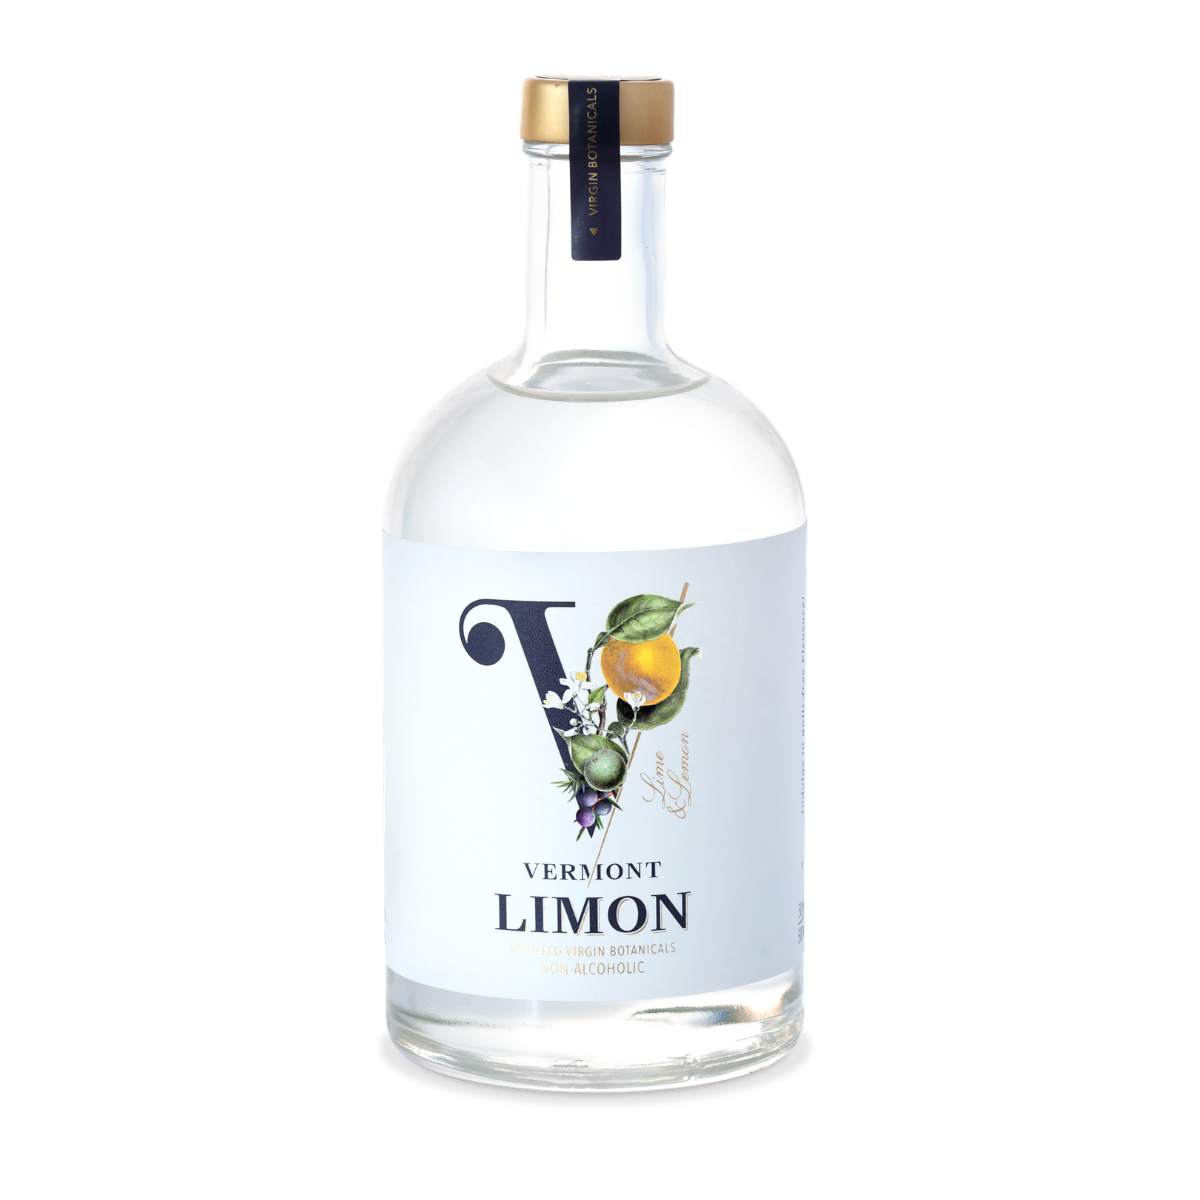 Vergin Gin Limon (1 x 500ml)